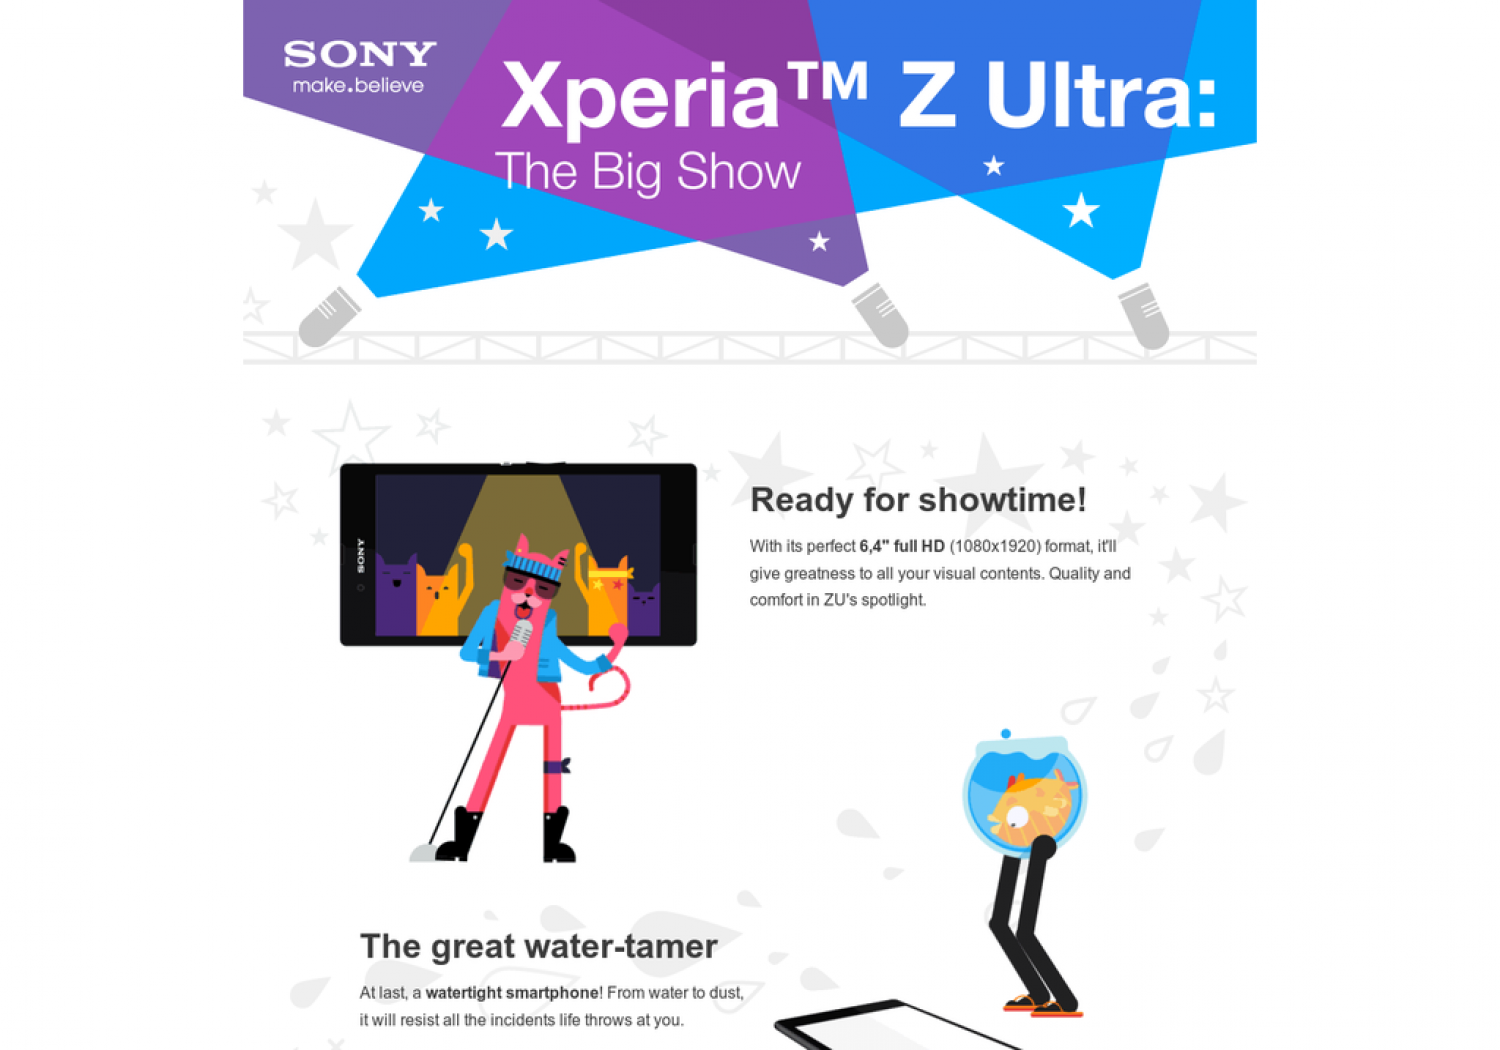 Xperia Z Ultra: The Big Show Infographic